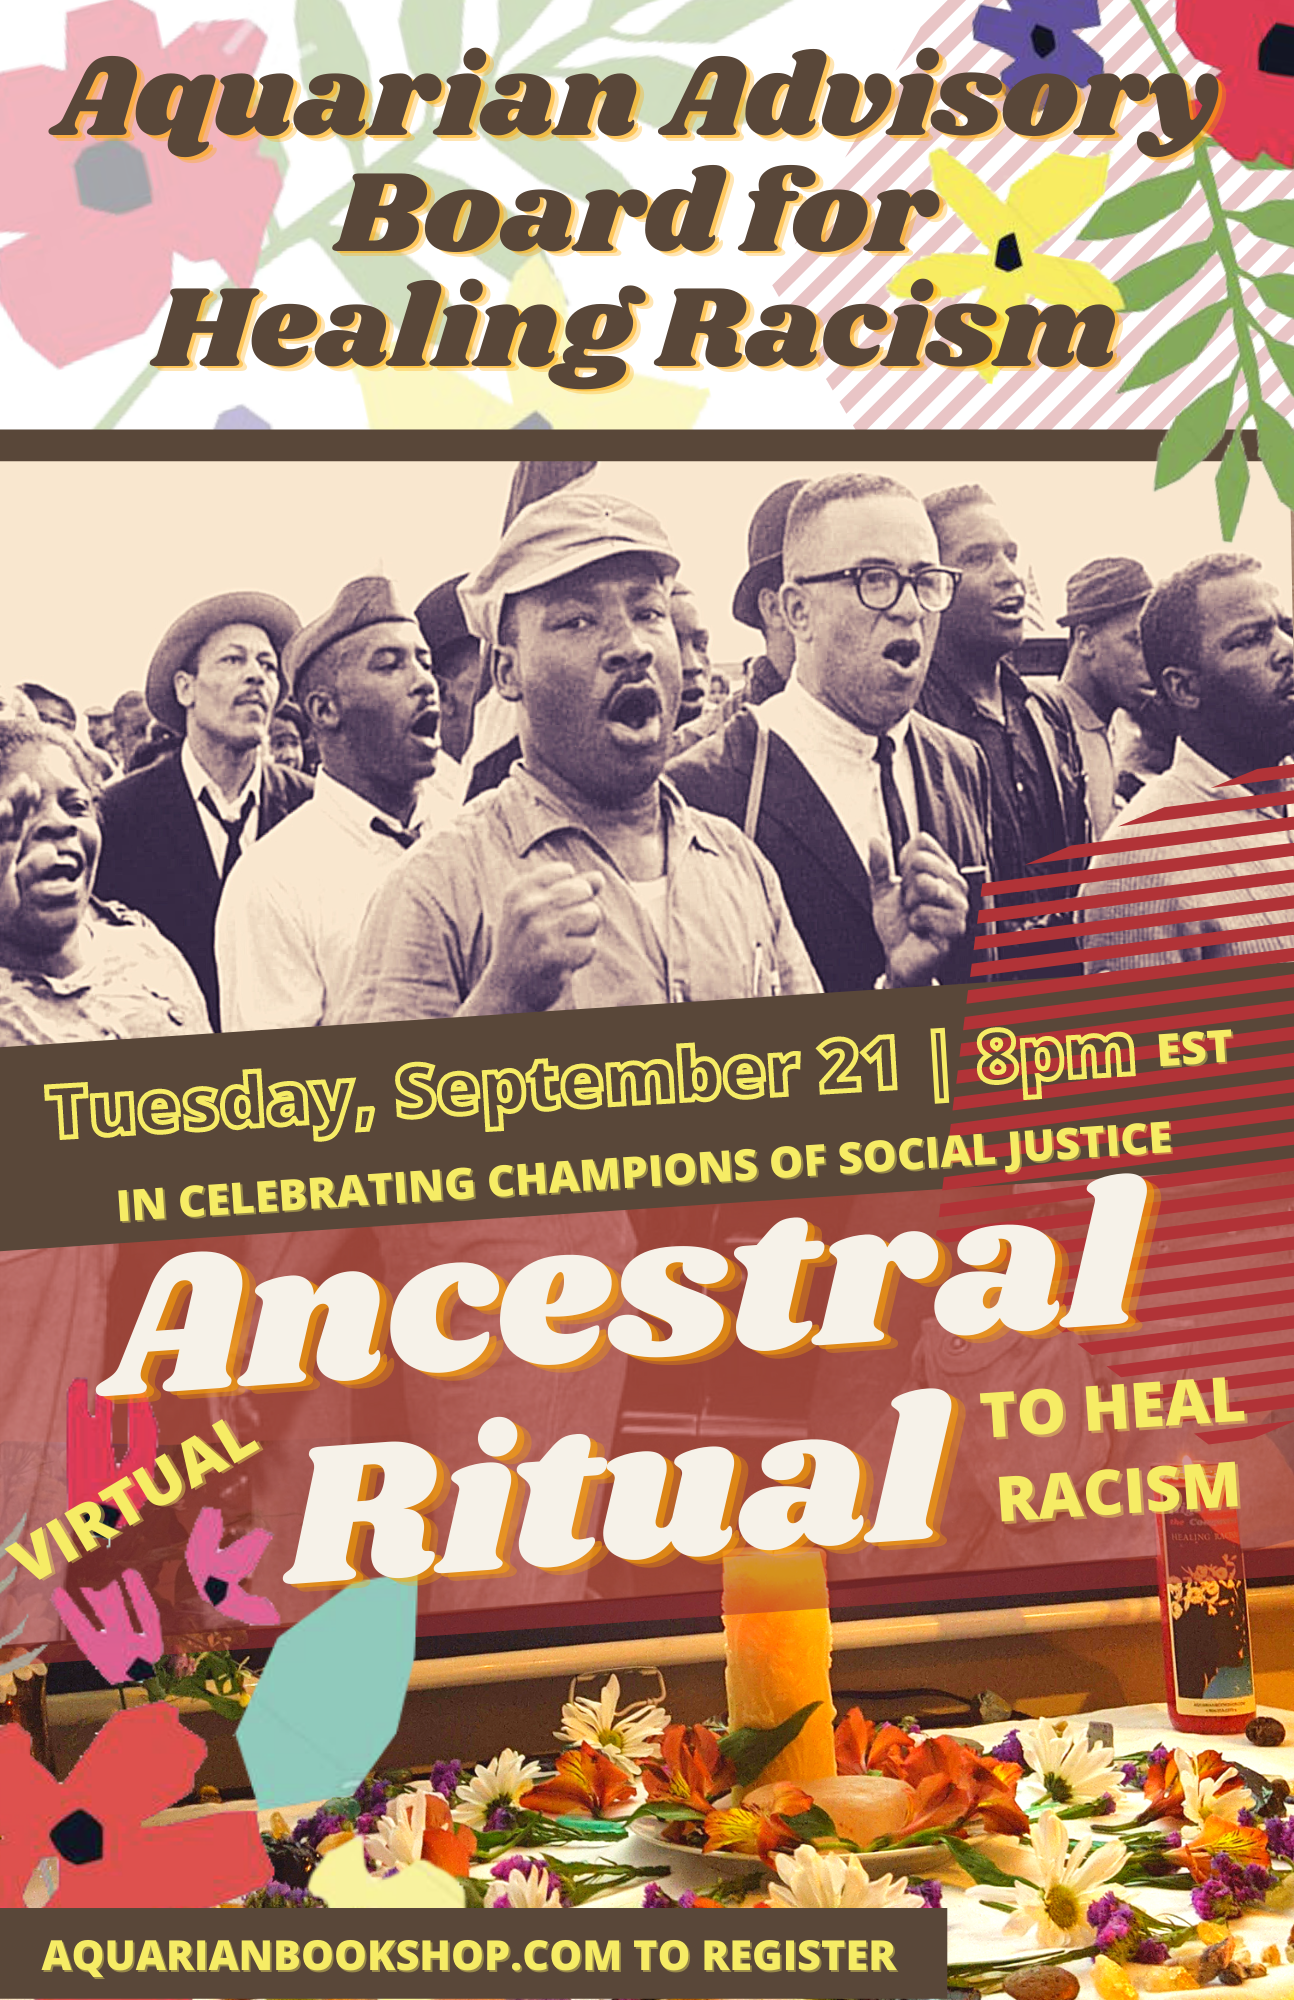 Transcription: Aquarian Advisory Board for Healing Racism | September 21, 8pm EST | In Celebrating Champions of Social Justice | Virtual Ancestral Ritual to Heal Racism | Aquarianbookshop.com to register